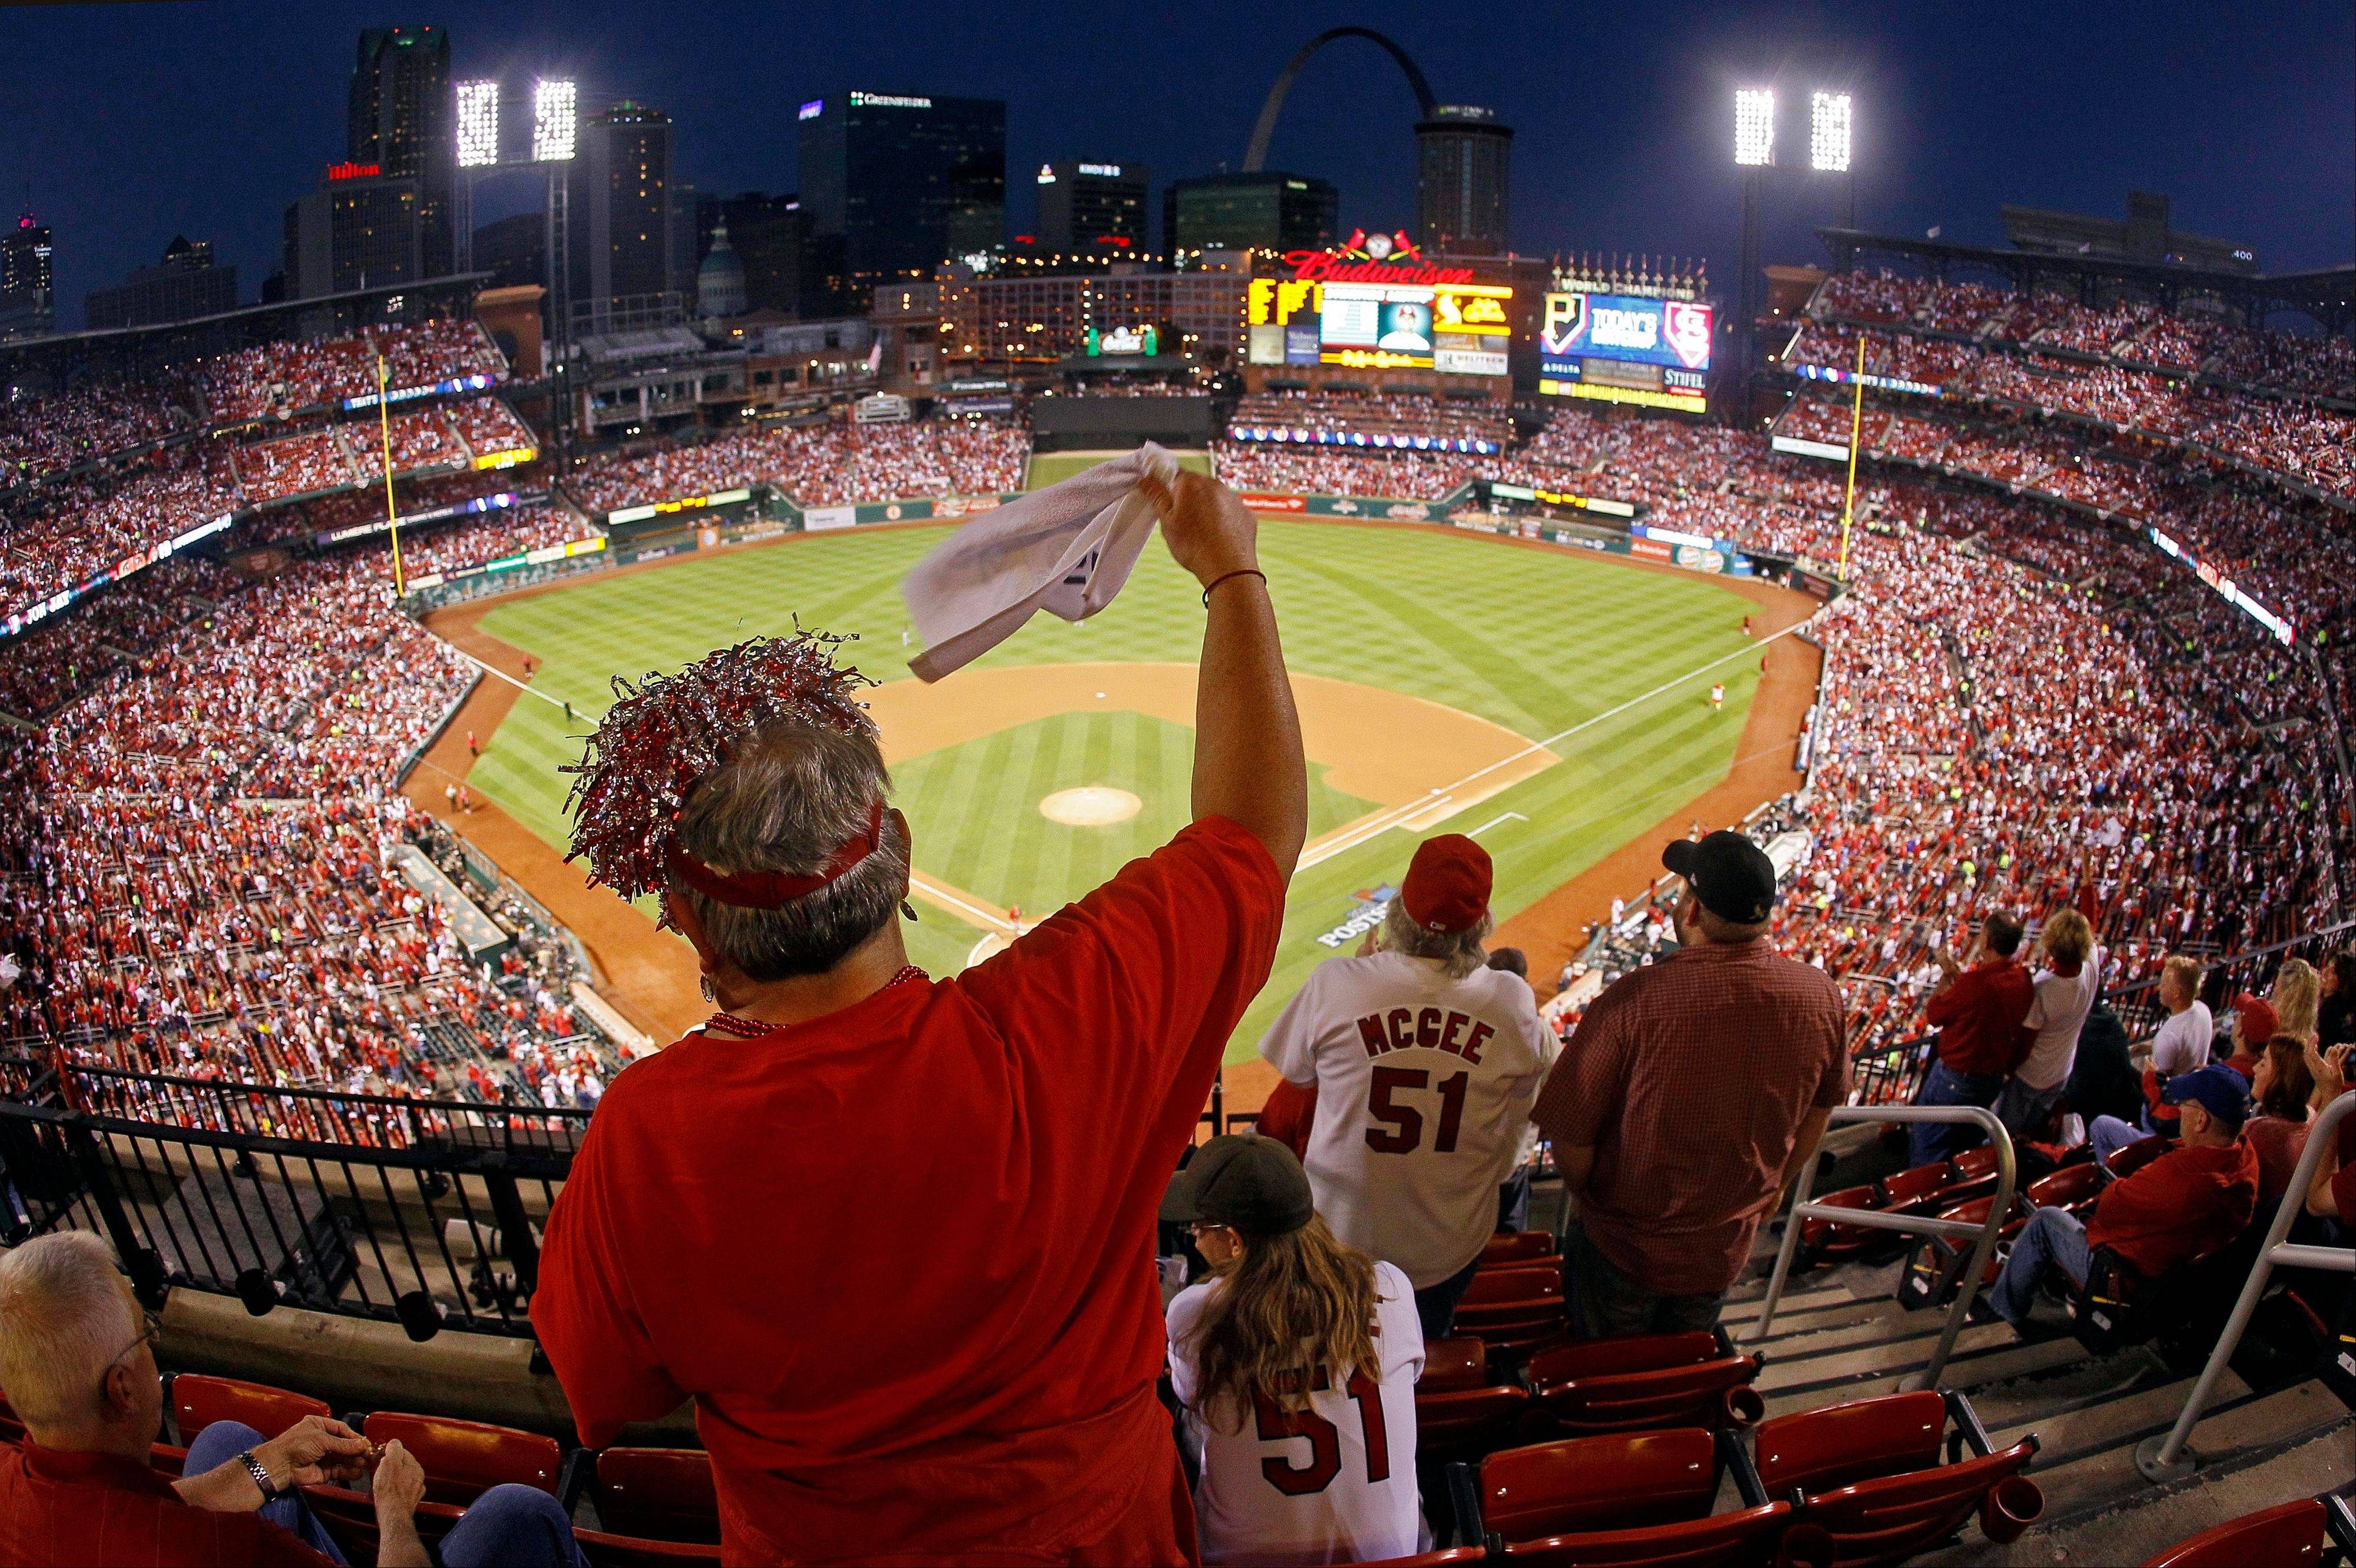 Cardinals fan Dawn Schallenberg of Bethalto, Ill., cheers as the players are introduced before Game 5 of the National League Division Series against the Pittsburgh Pirates on Wednesday in St. Louis.